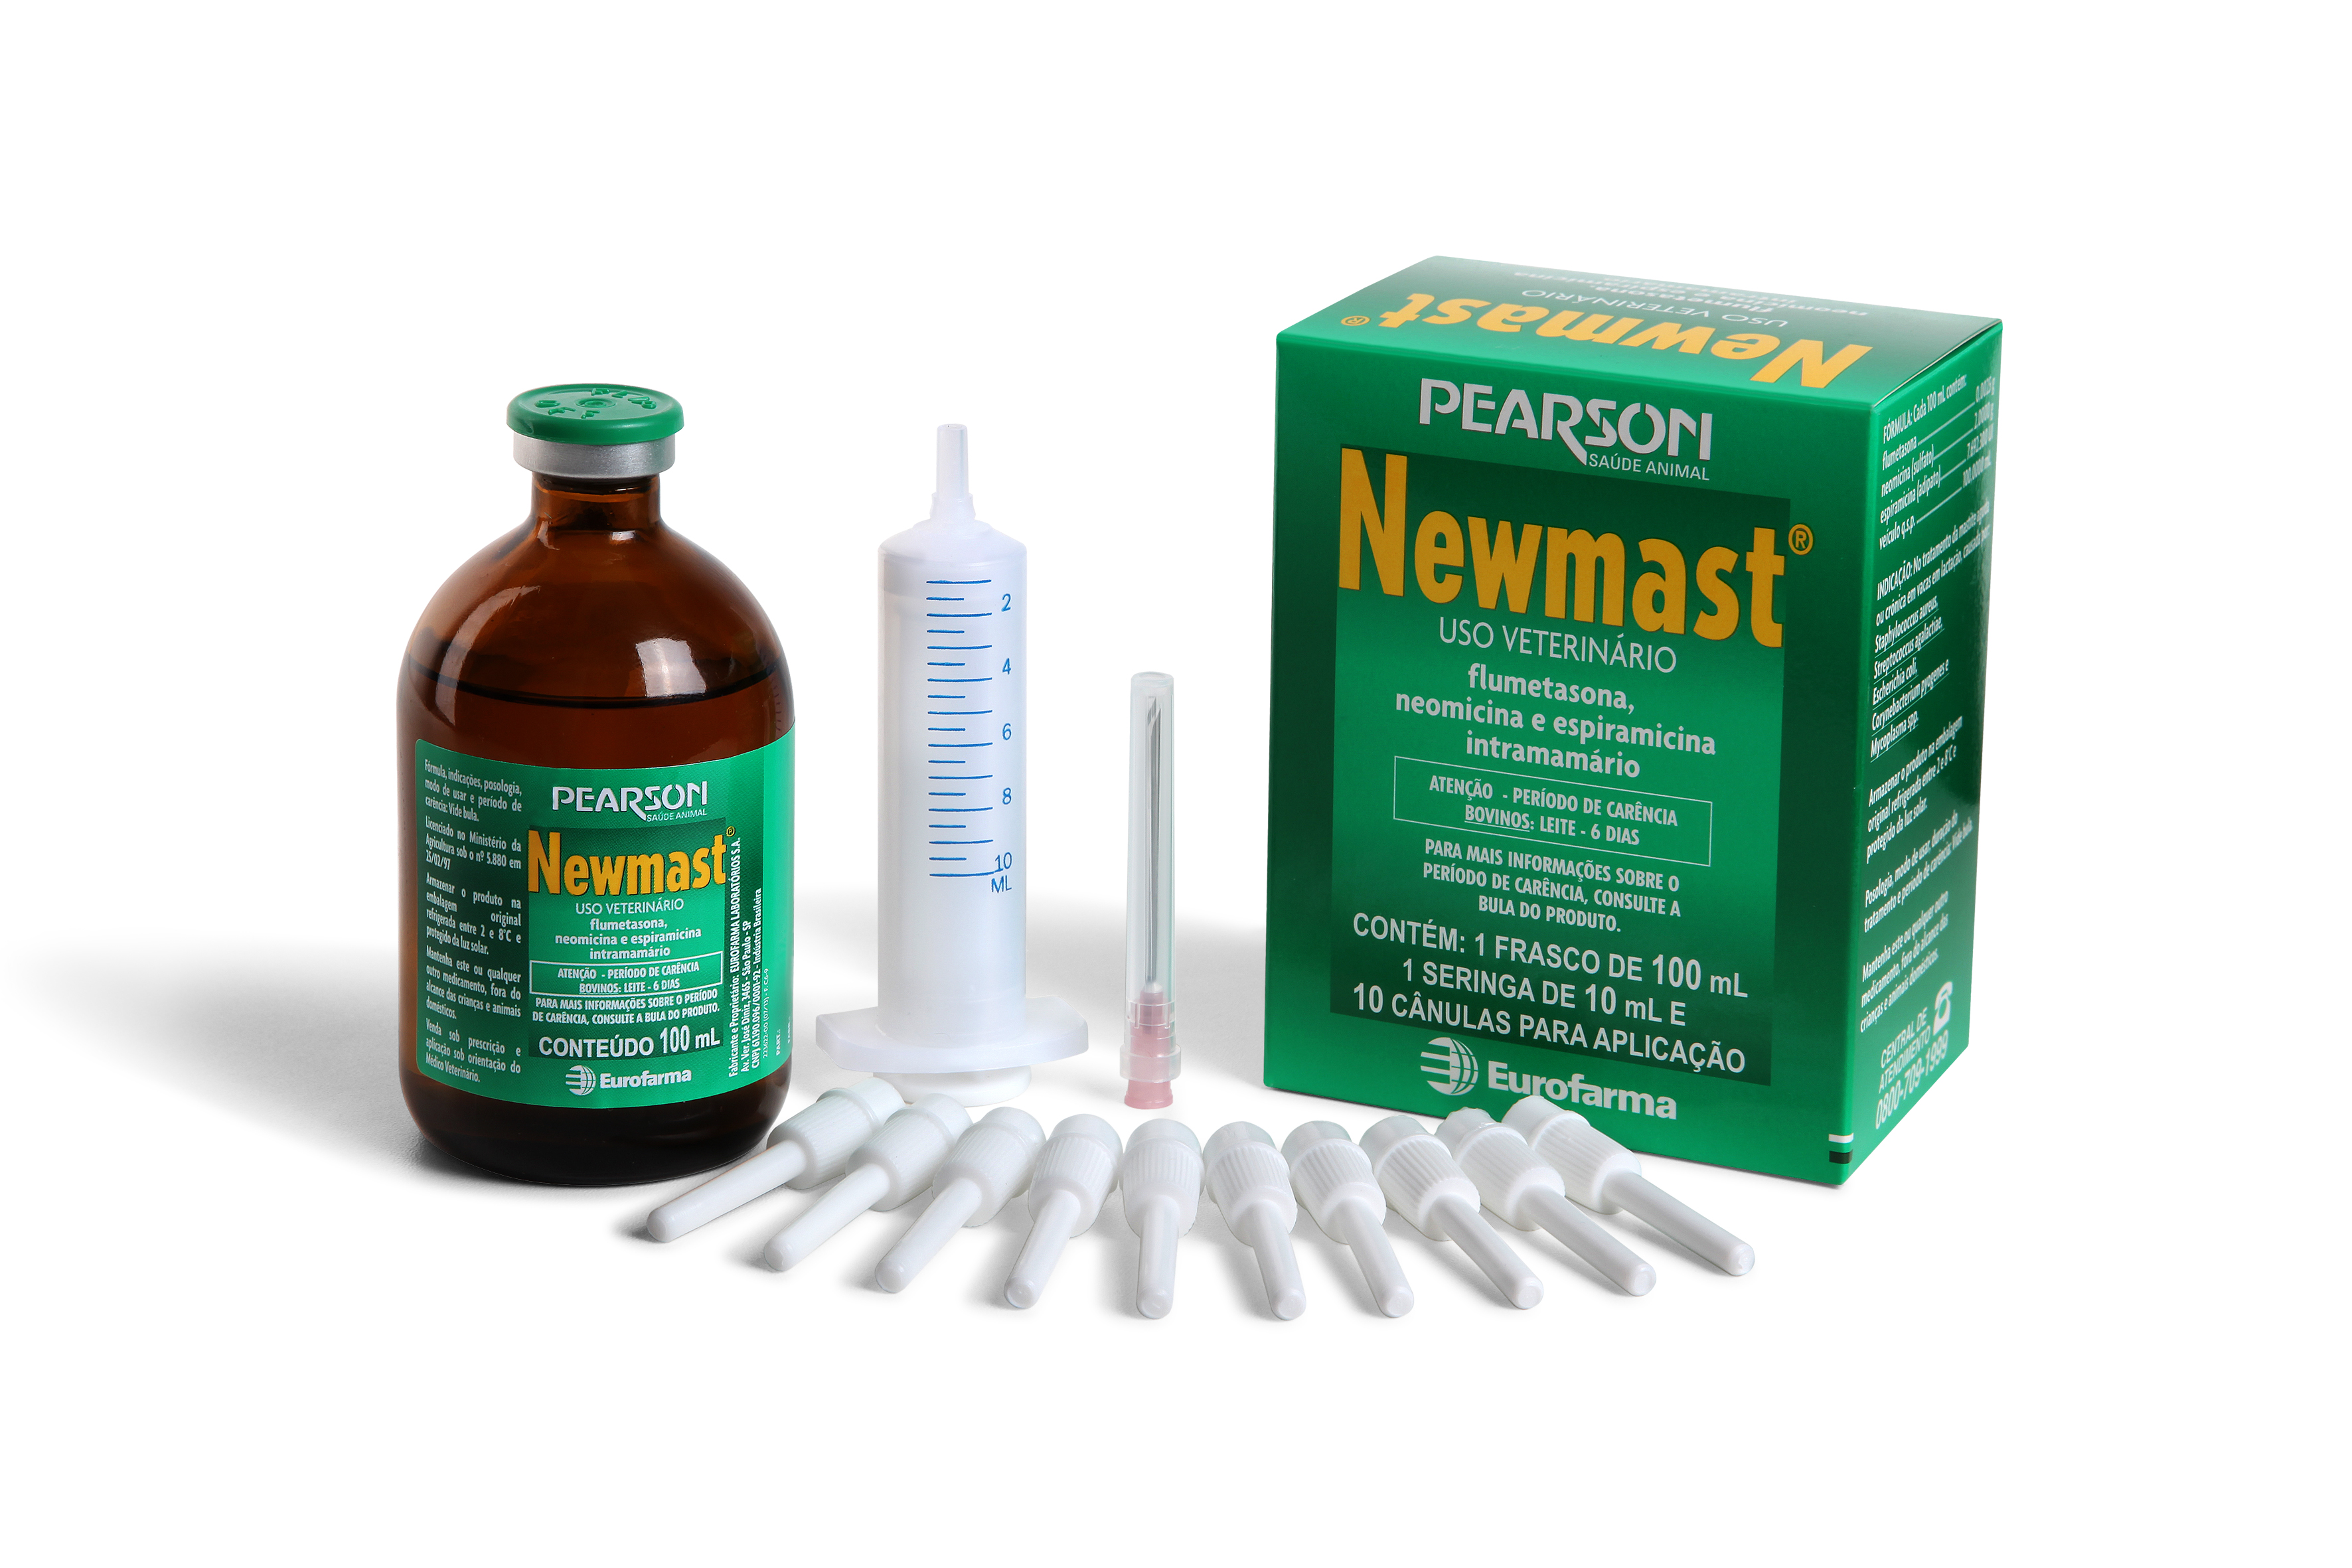 Newmast